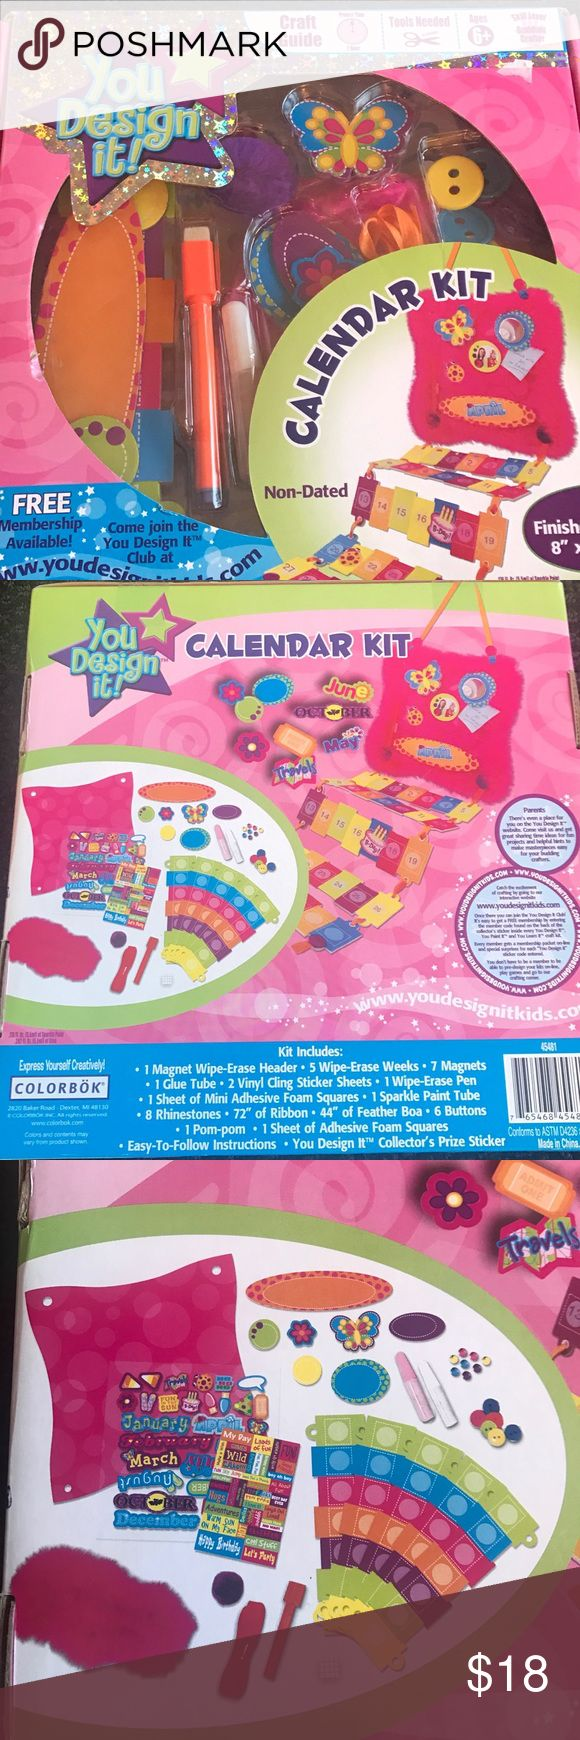 "⭐️YOU DESIGN IT! CALENDAR KIT ⭐️⭐️⭐️BRAND NEW⭐️⭐️⭐️  Express Yourself Creatively!   COLORBOK YOU DESIGN IT! CALENDAR KIT💕💕INCLUDES: 1 Magnet Wipe-Erase Header; 5 Wipe-Erase Weeks; 7 Magnets; 1 Glue Tube; 2 Vinyl Cling Sticker Sheets; 1 Wipe Erase Pen; 1 Sheet of Mini Adhesive Foam Squares;  1 Sparkle Paint Tube; 8 Rhinestones; 72"" of Ribbon; 44"" of Feather Boa; 6 Buttons; 1 Pom Pom; 1 Sheet of Adhesive Foam Squares.  Easy to follow instructions. You design it!! 💕💕💕Have fun!!!!!! 💕💕💕…"